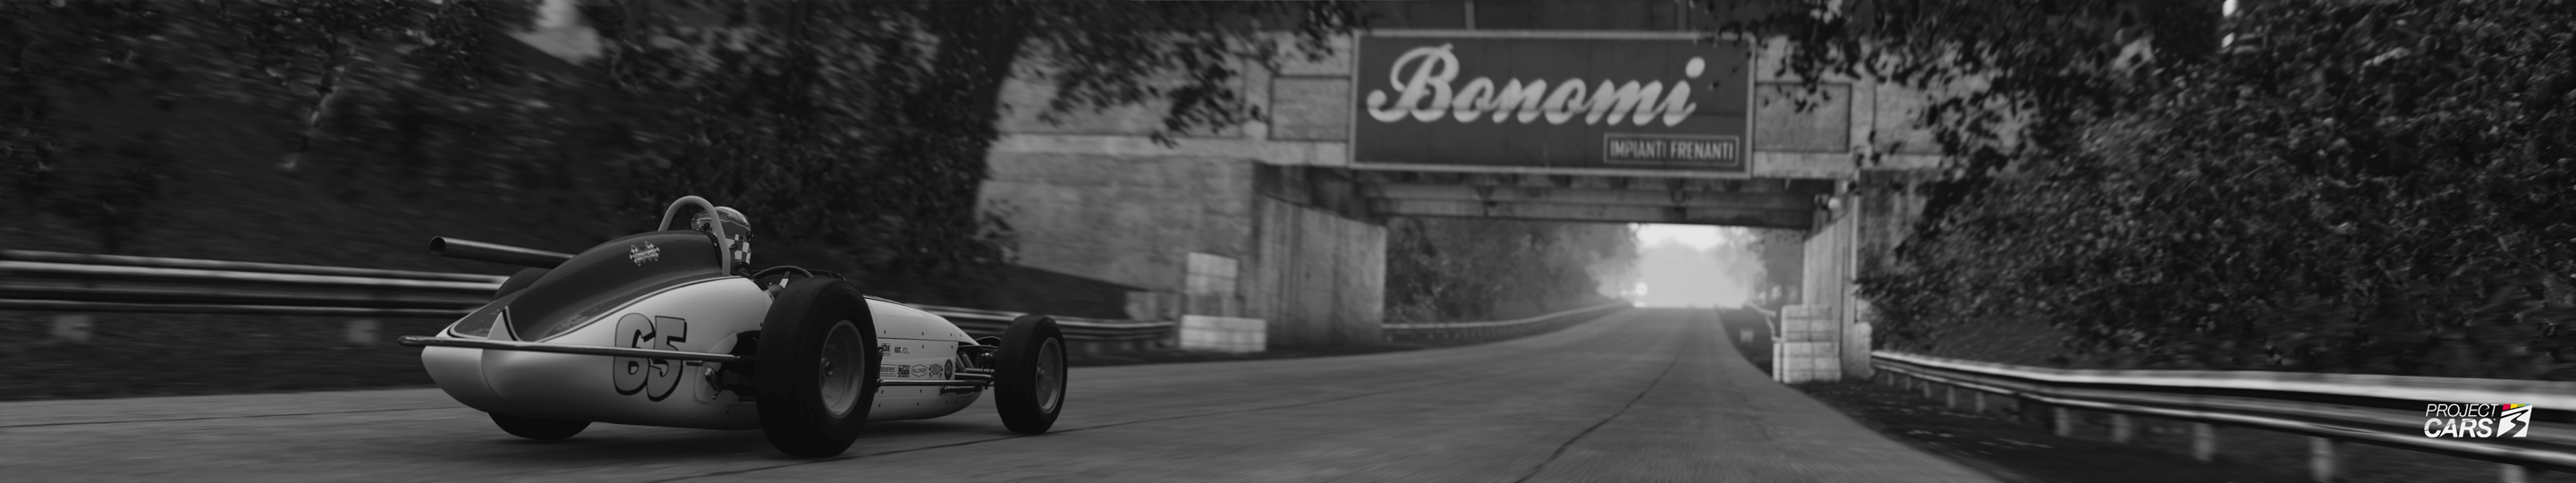 2 PROJECT CARS 3 WATSON ROADSTER at MONZA HISTORIC copy.jpg